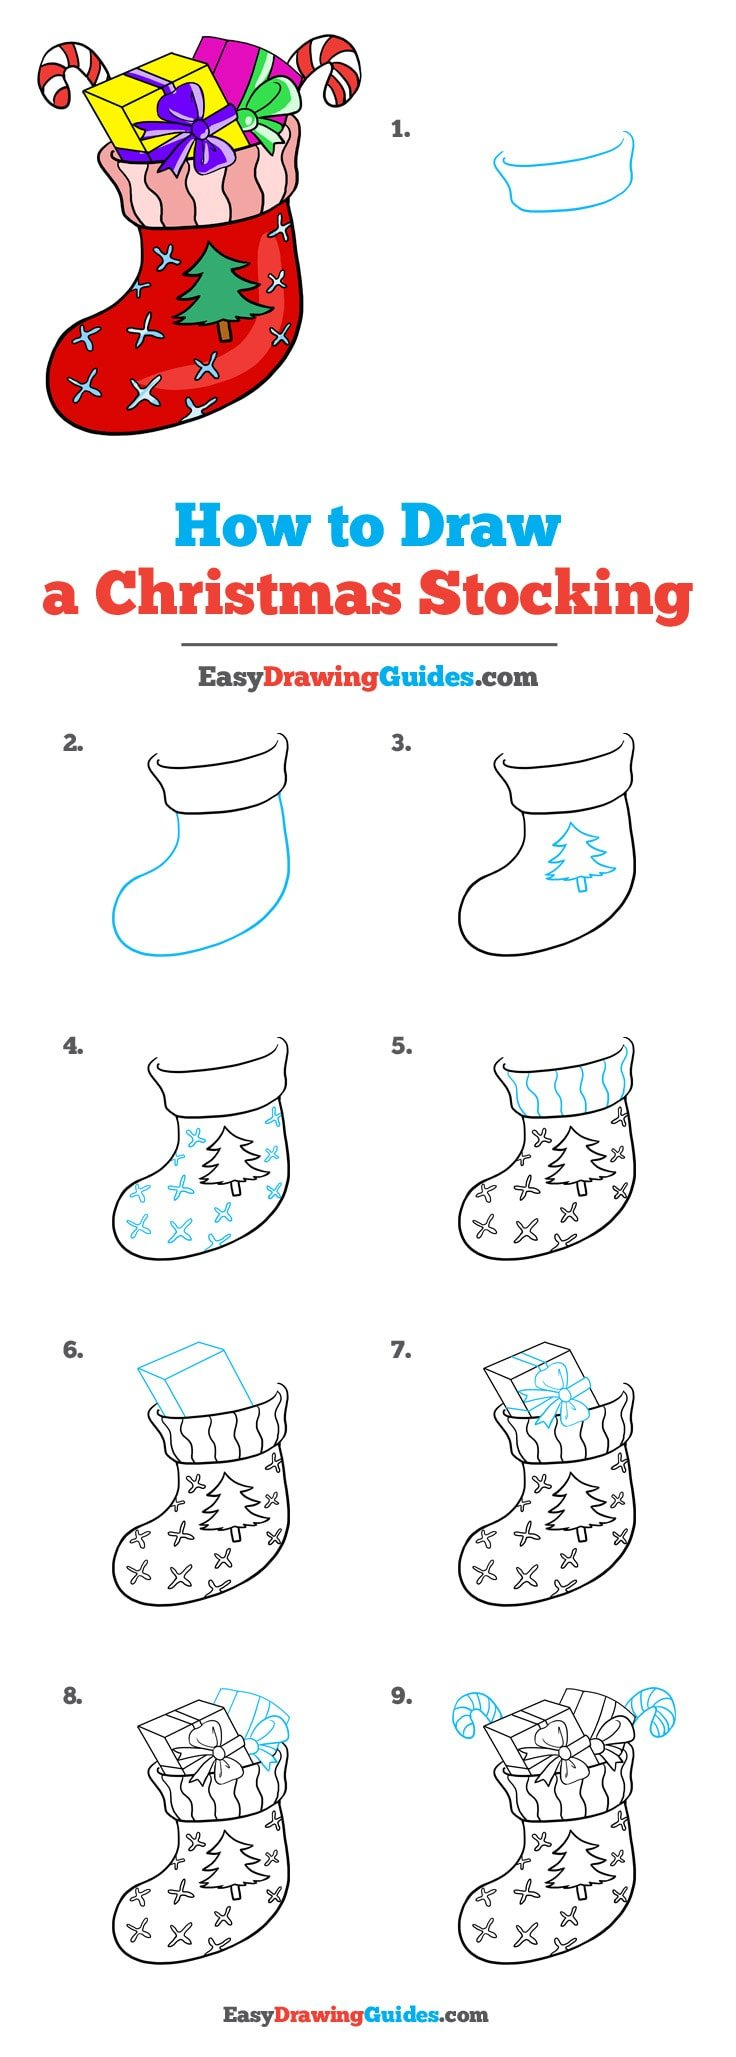 How to Draw Christmas Stocking